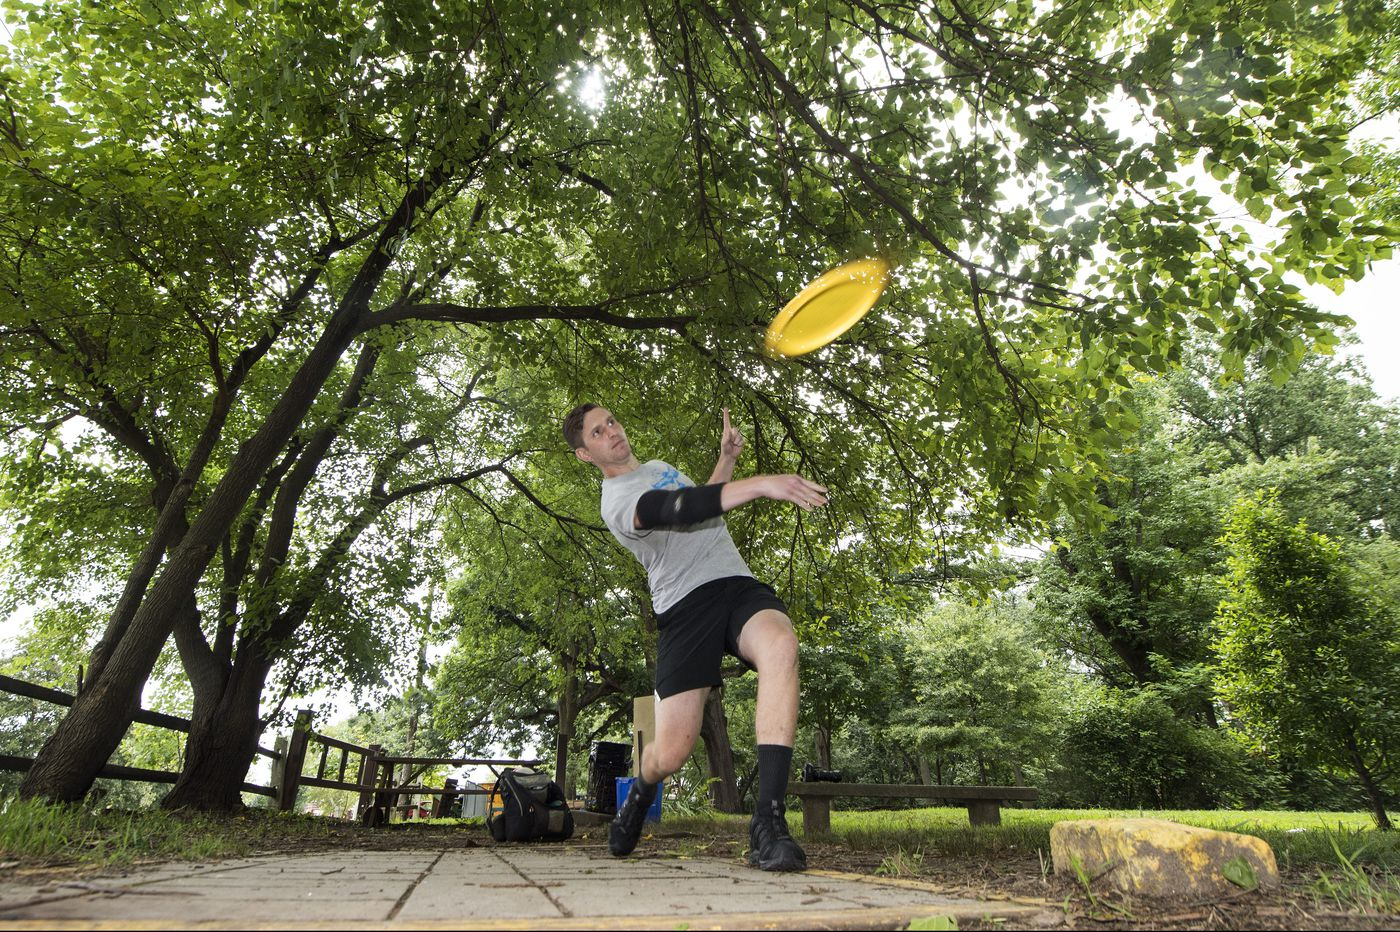 Disc golf: The ultimate sport for the nature lover who seeks a little social camaraderie